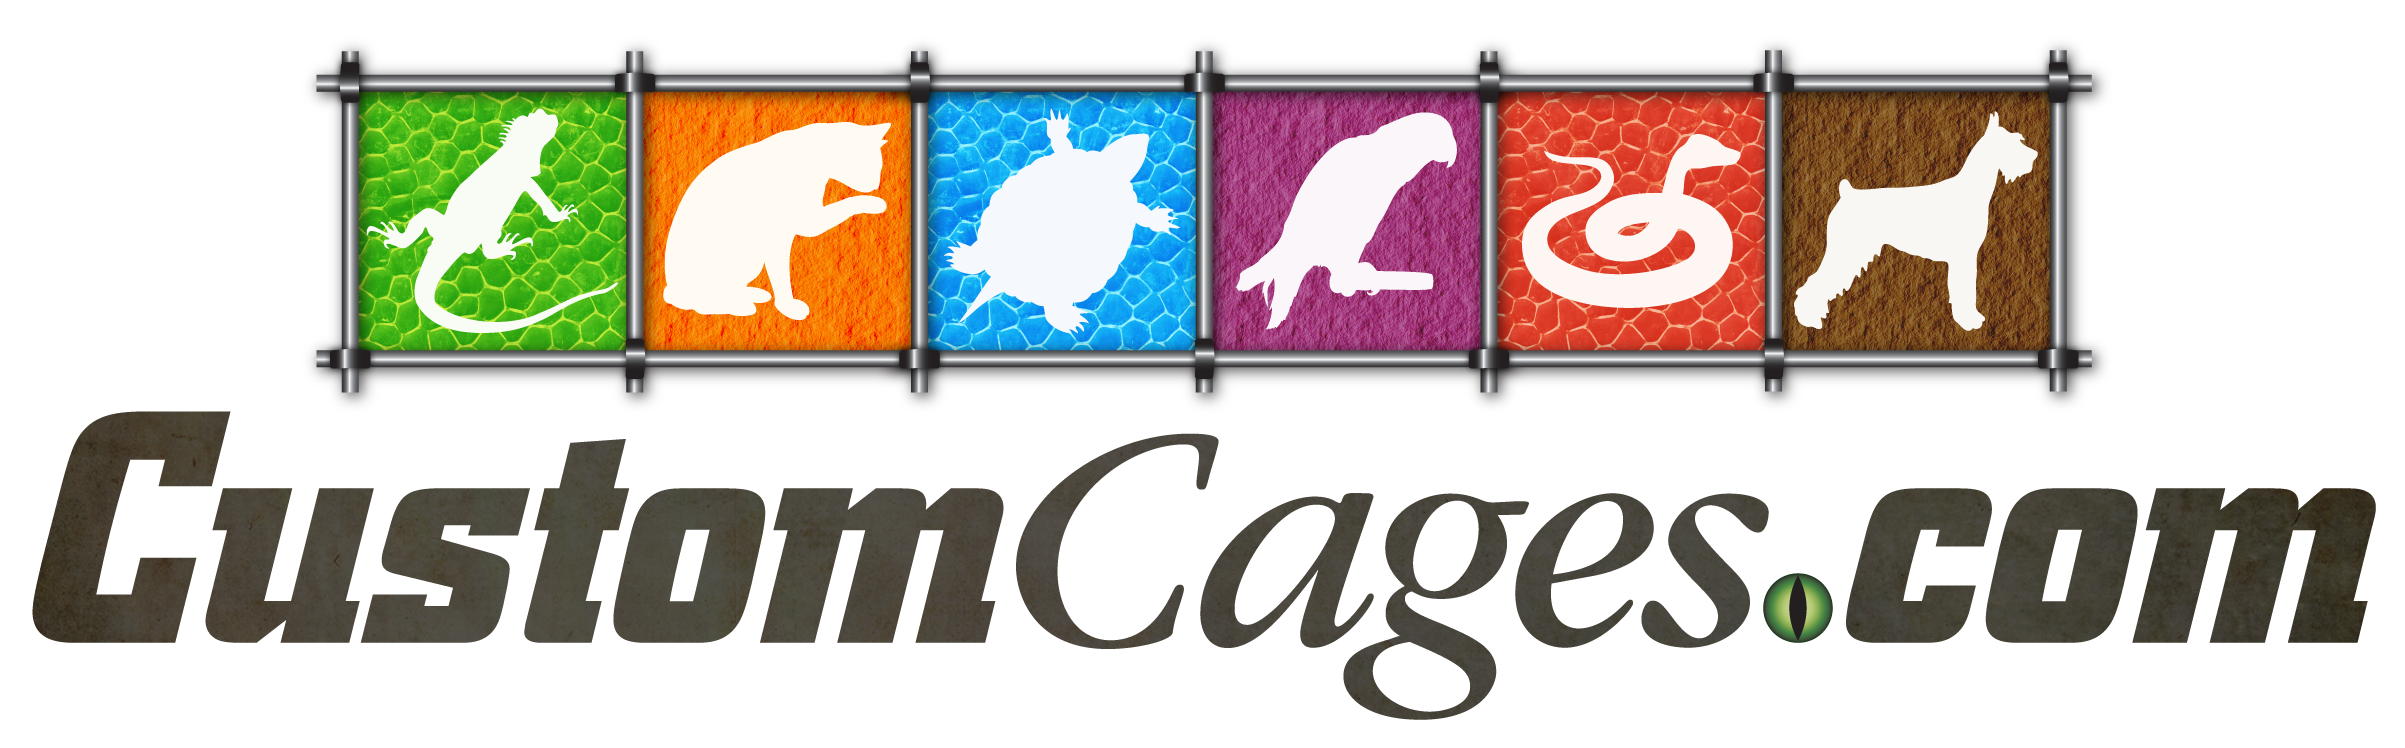 www.customcages.com